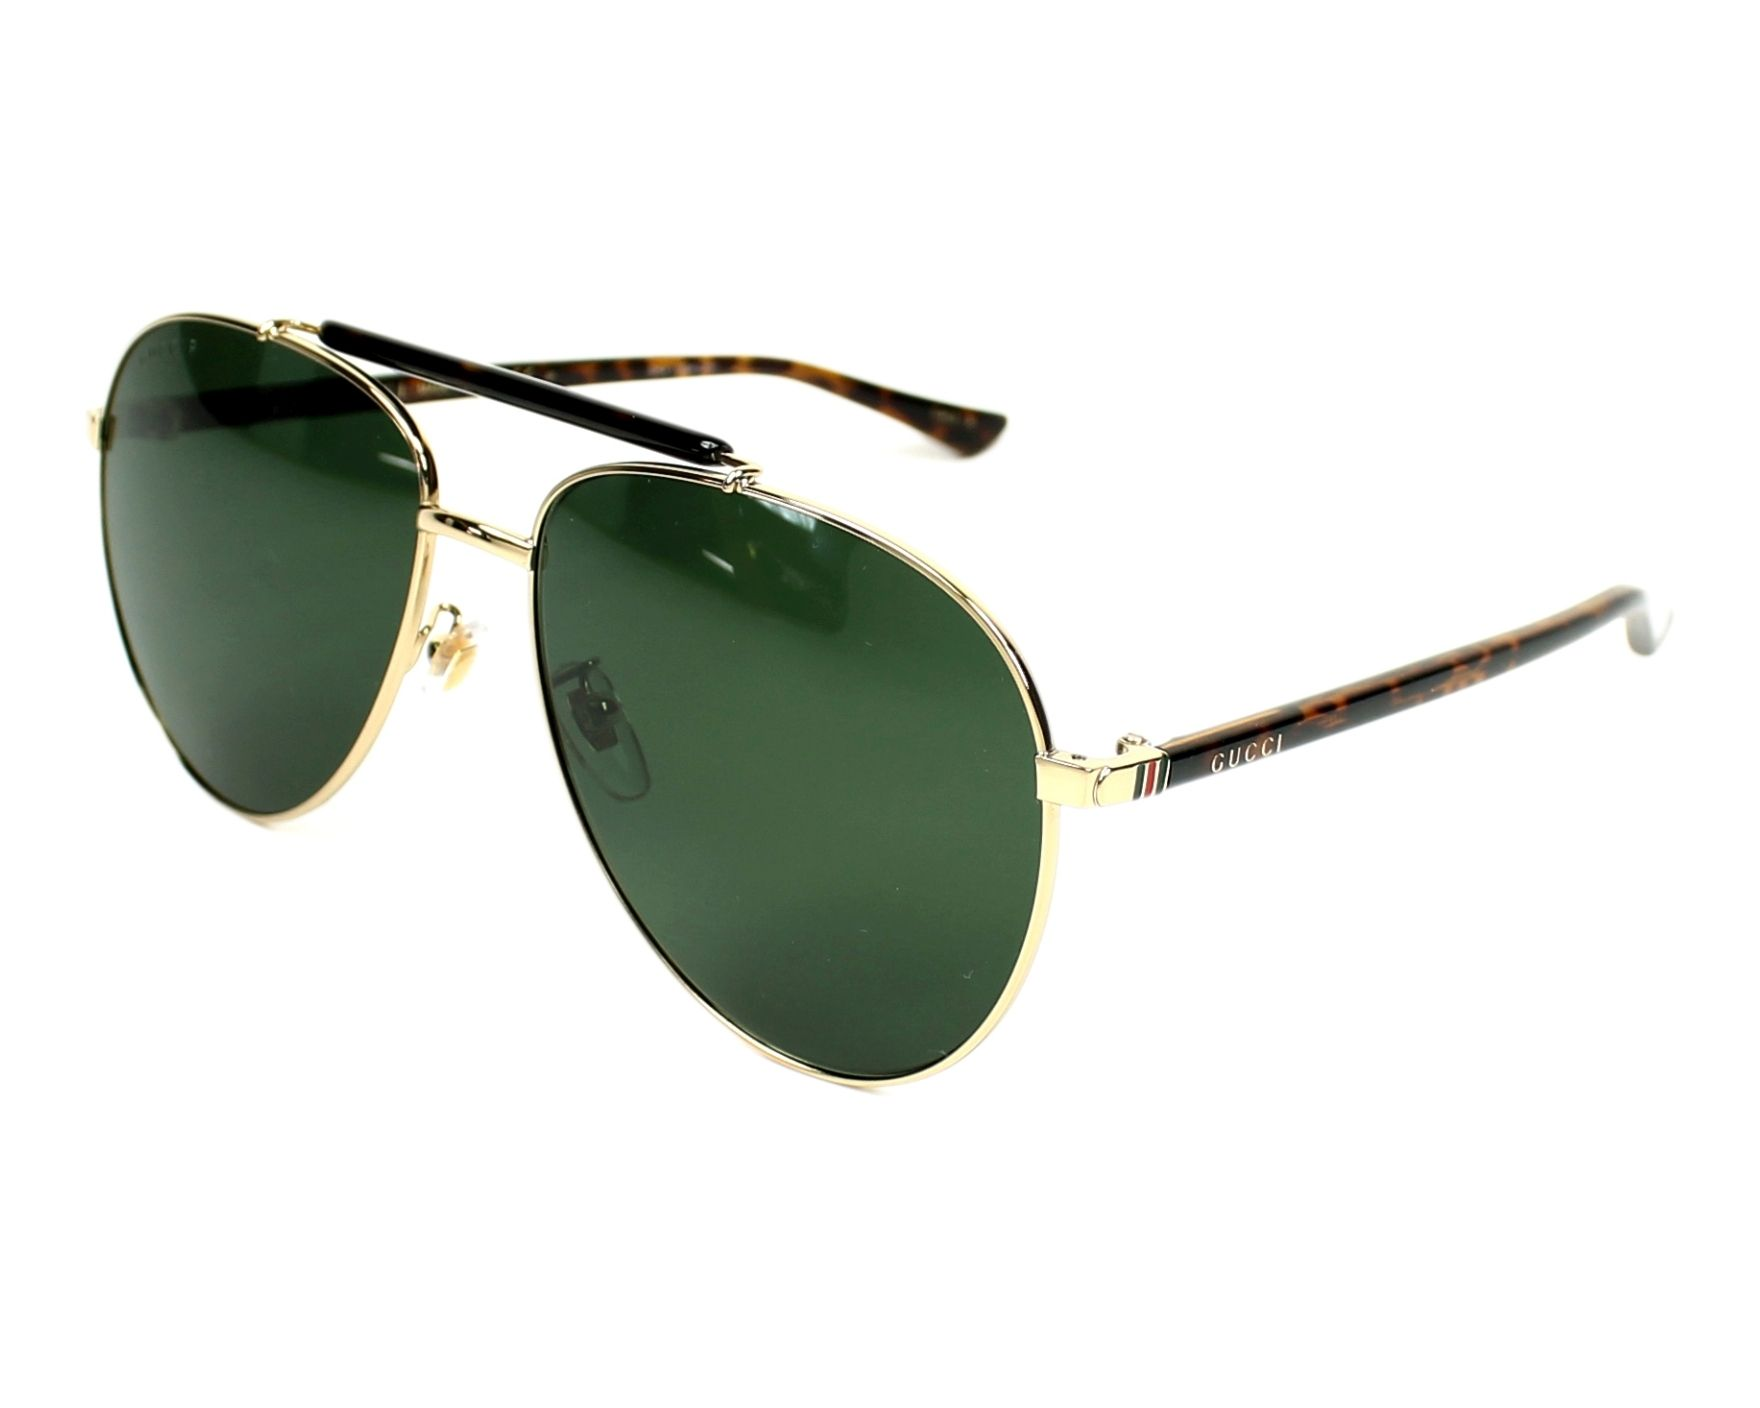 Gucci Sunglasses Green  gucci sunglasses gg0014s 006 60 visionet